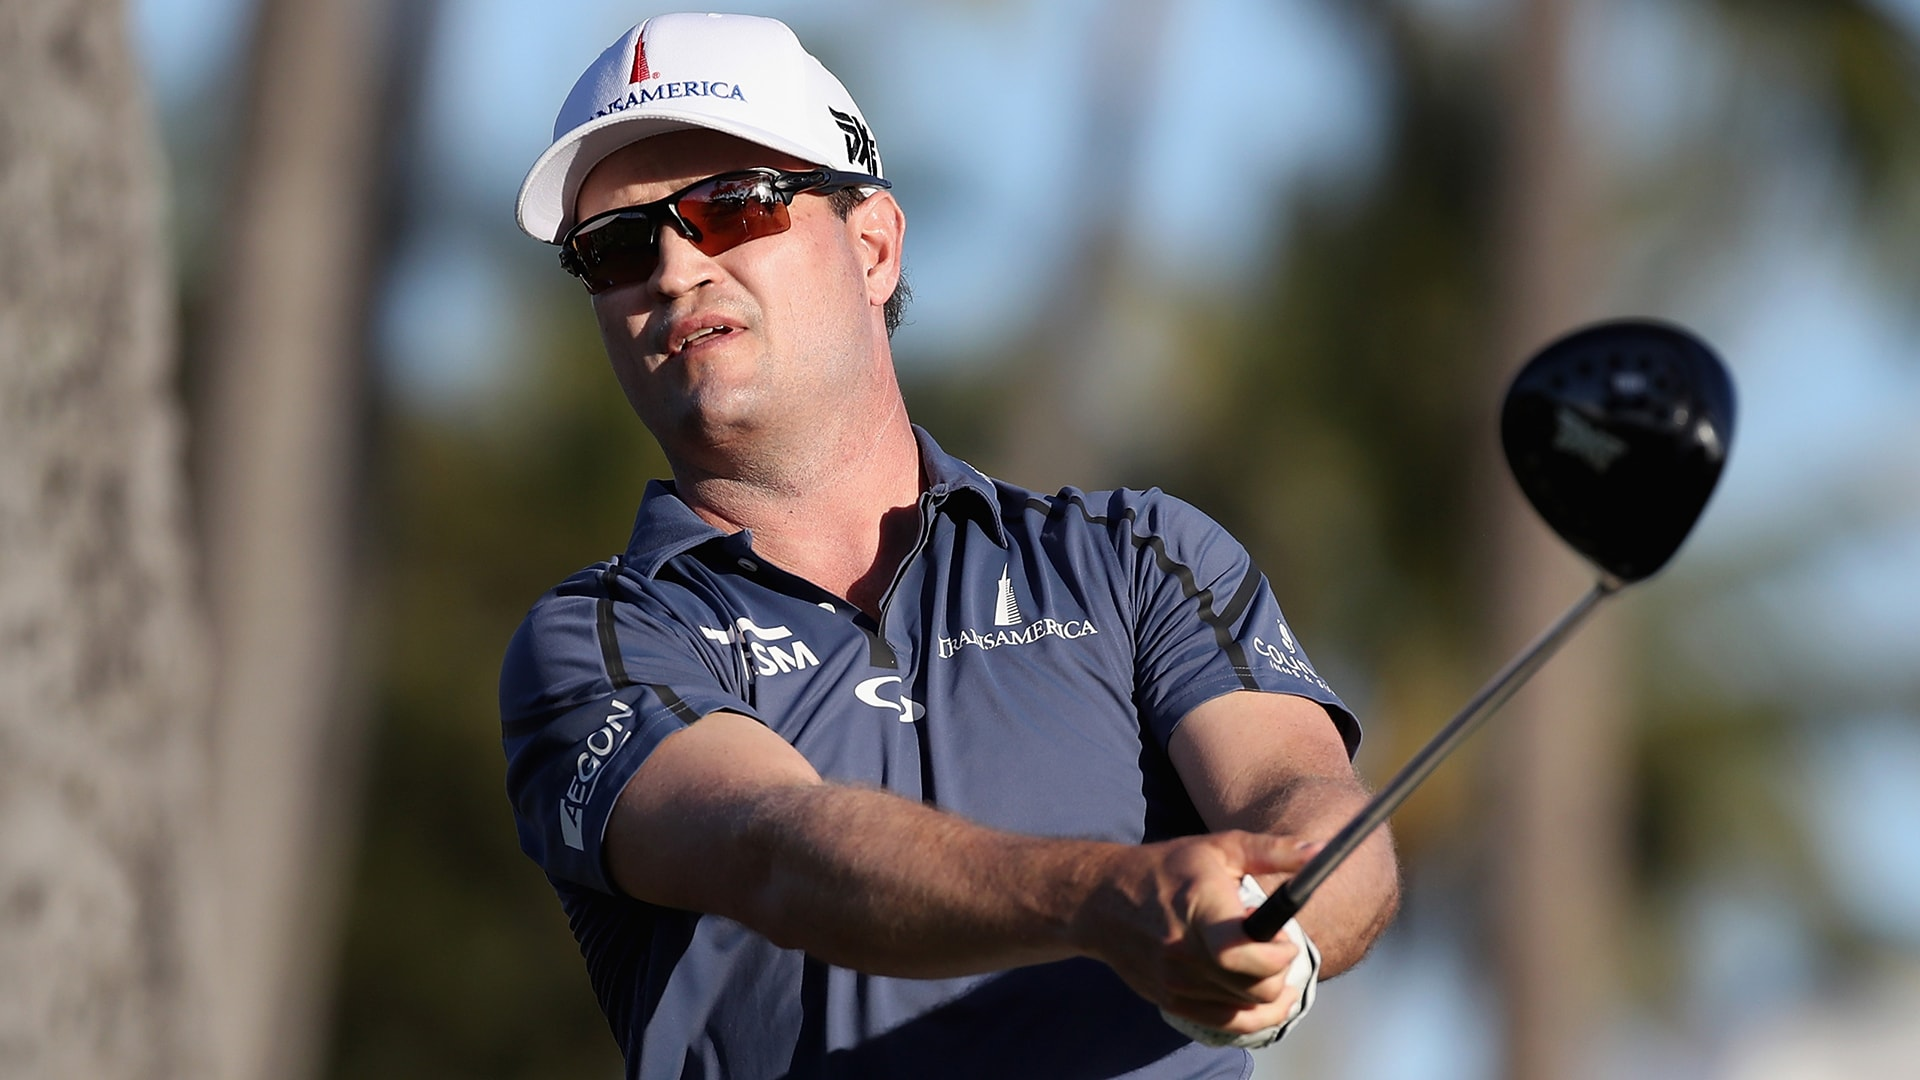 Zach Johnson at the 2018 Sony Open.